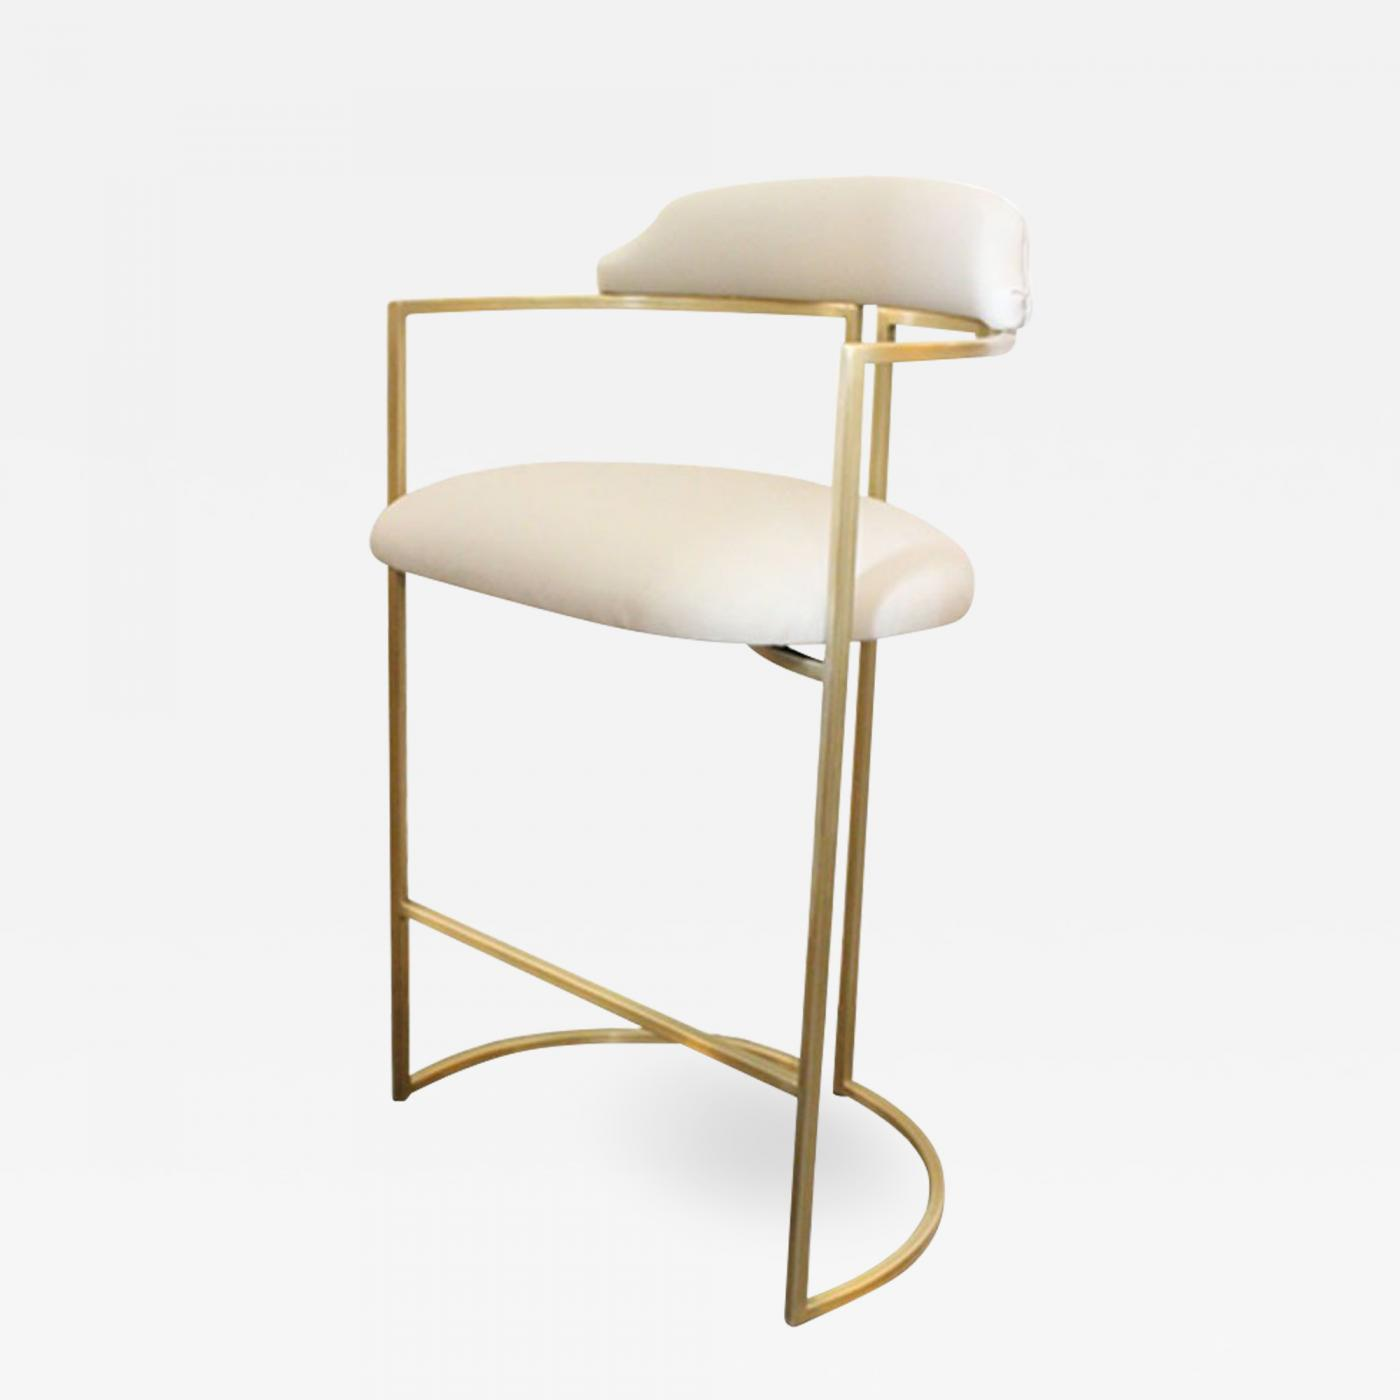 Upholstered Bar Chairs Again Again Custom Brass Bar Stools Upholstered In White Leather